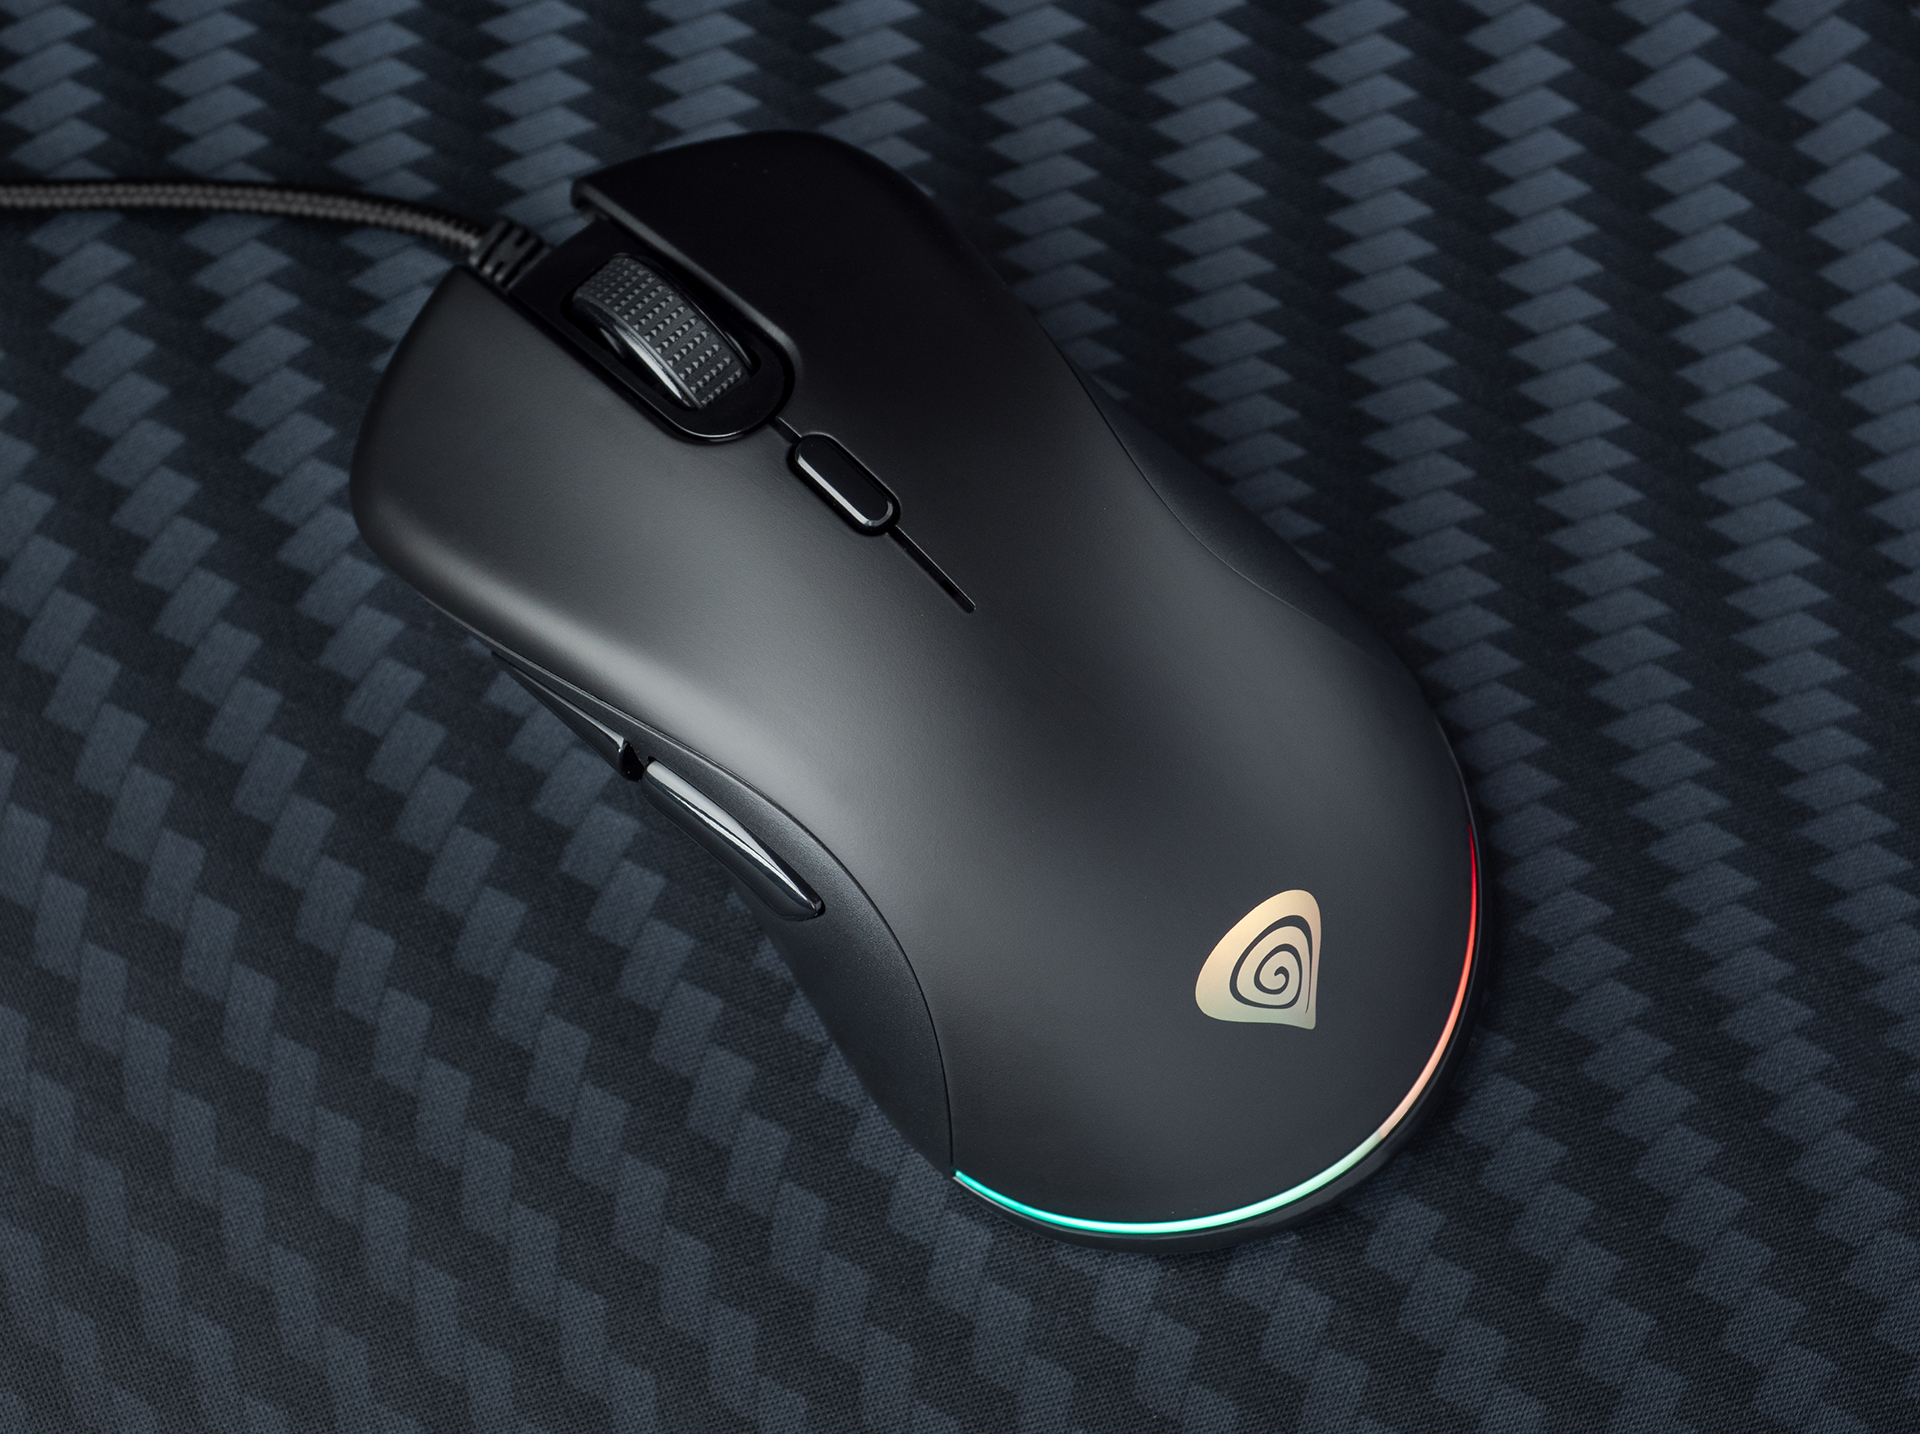 gaming mouse genesis krypton 200 optical 6400dpi with software black silent 5